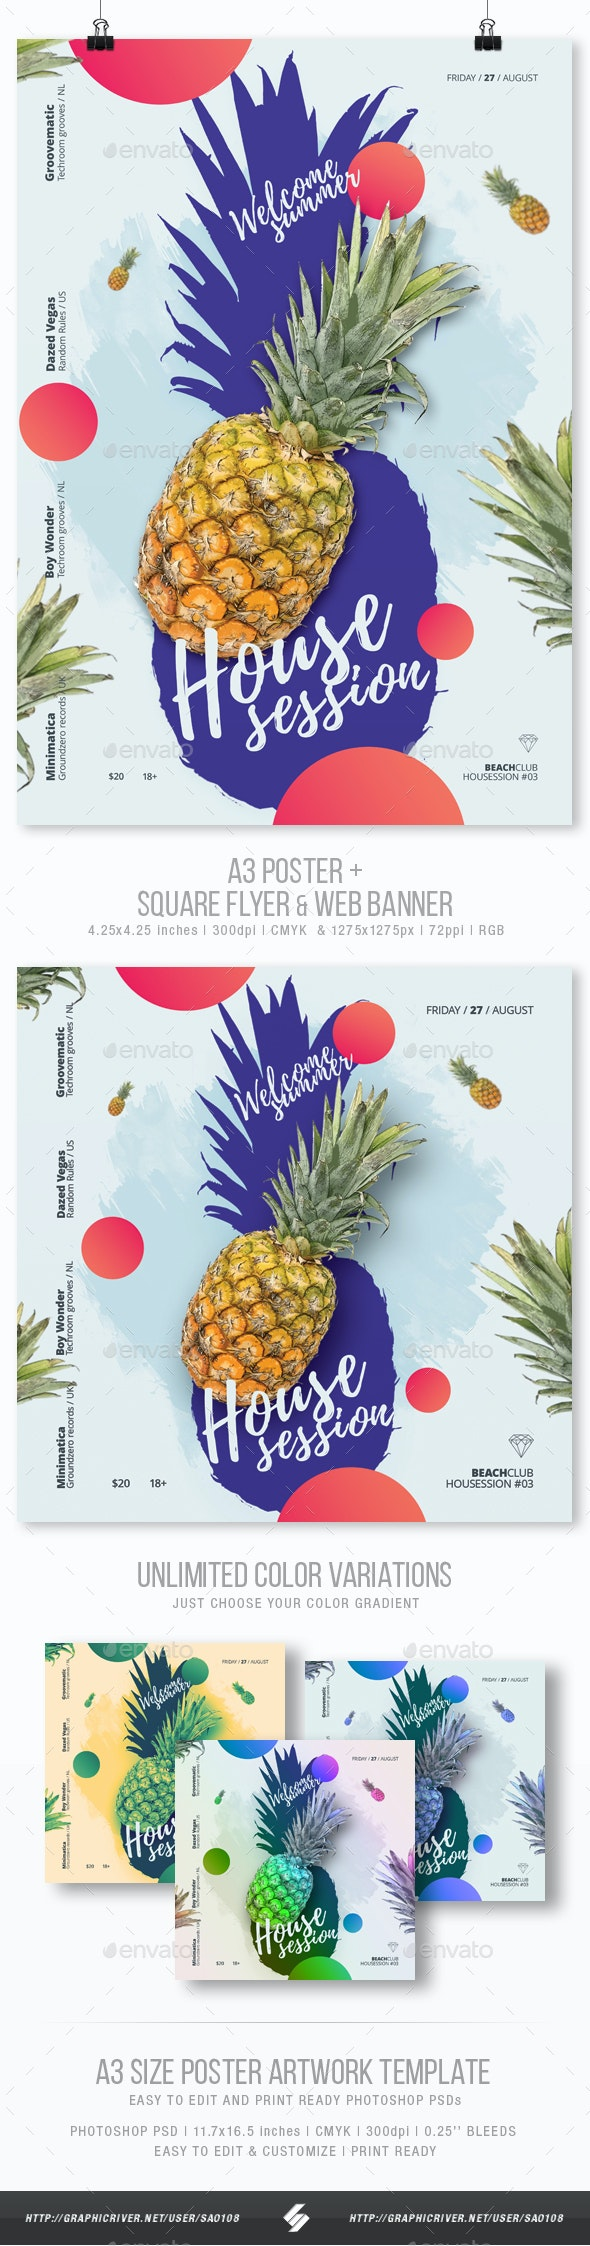 Welcome Summer - House Music Party Flyer / Poster Template A3 - Clubs & Parties Events